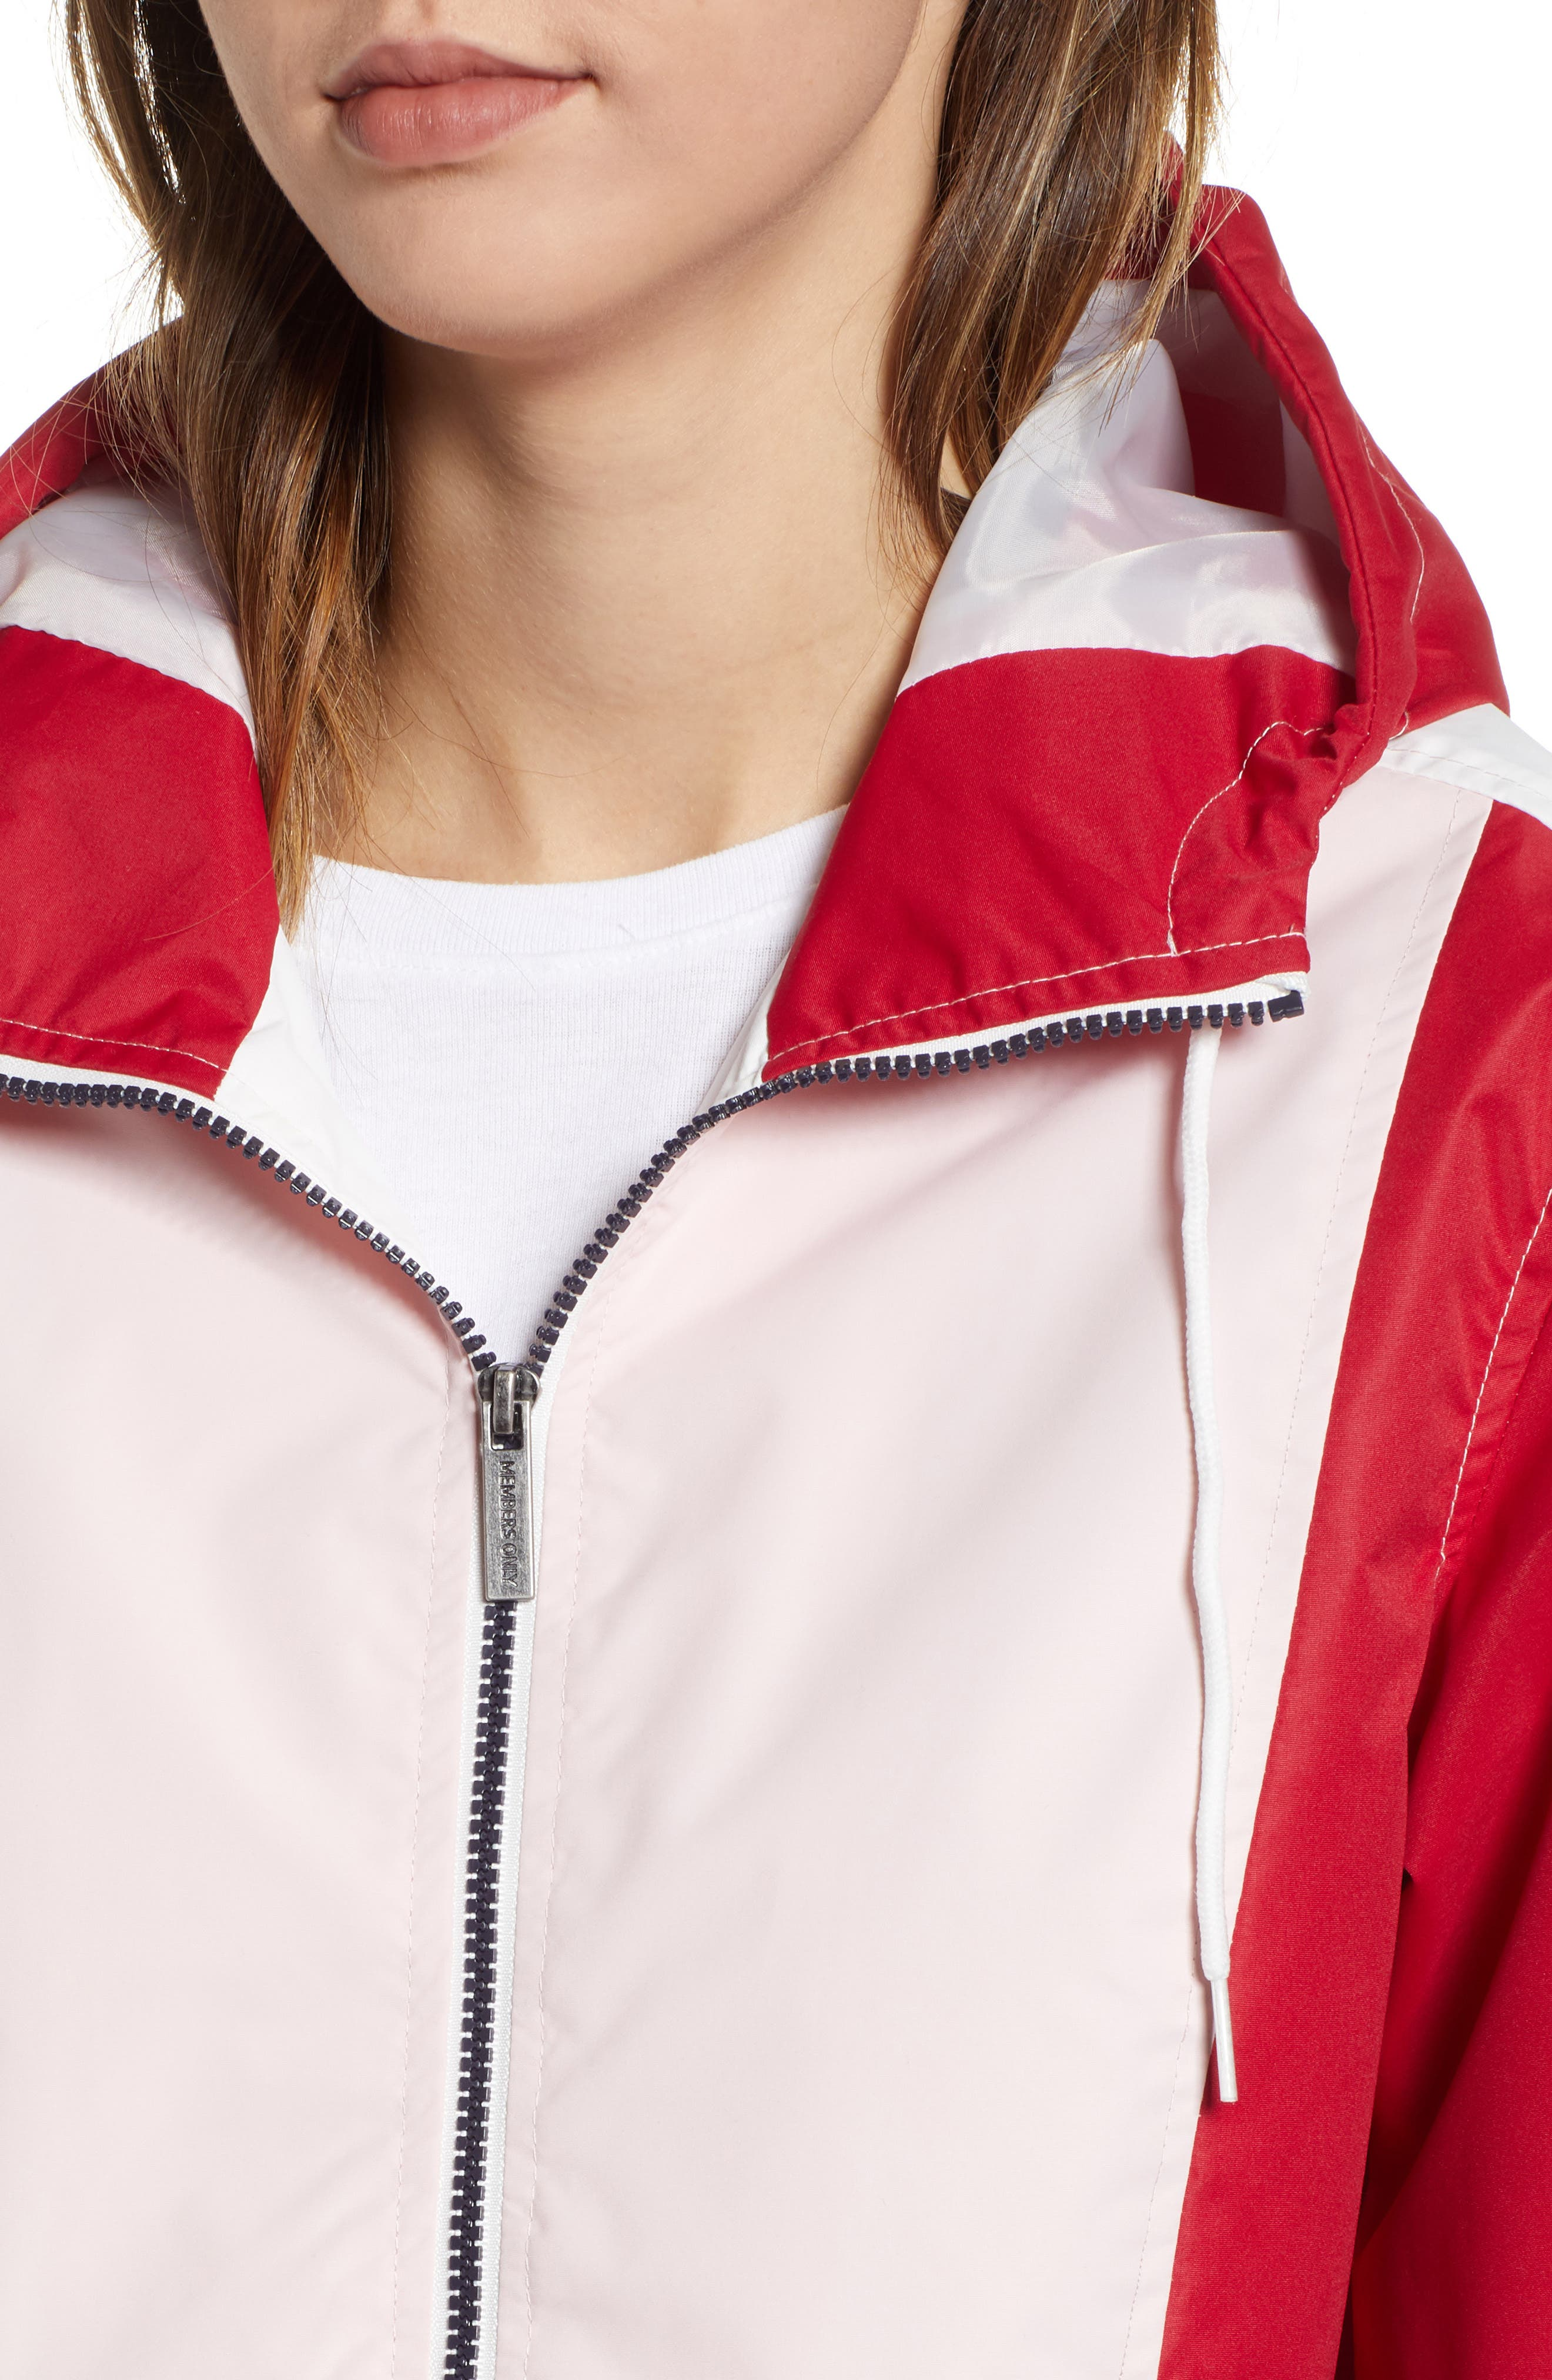 Retro Colorblock Bomber Jacket,                             Alternate thumbnail 4, color,                             PINK-RED